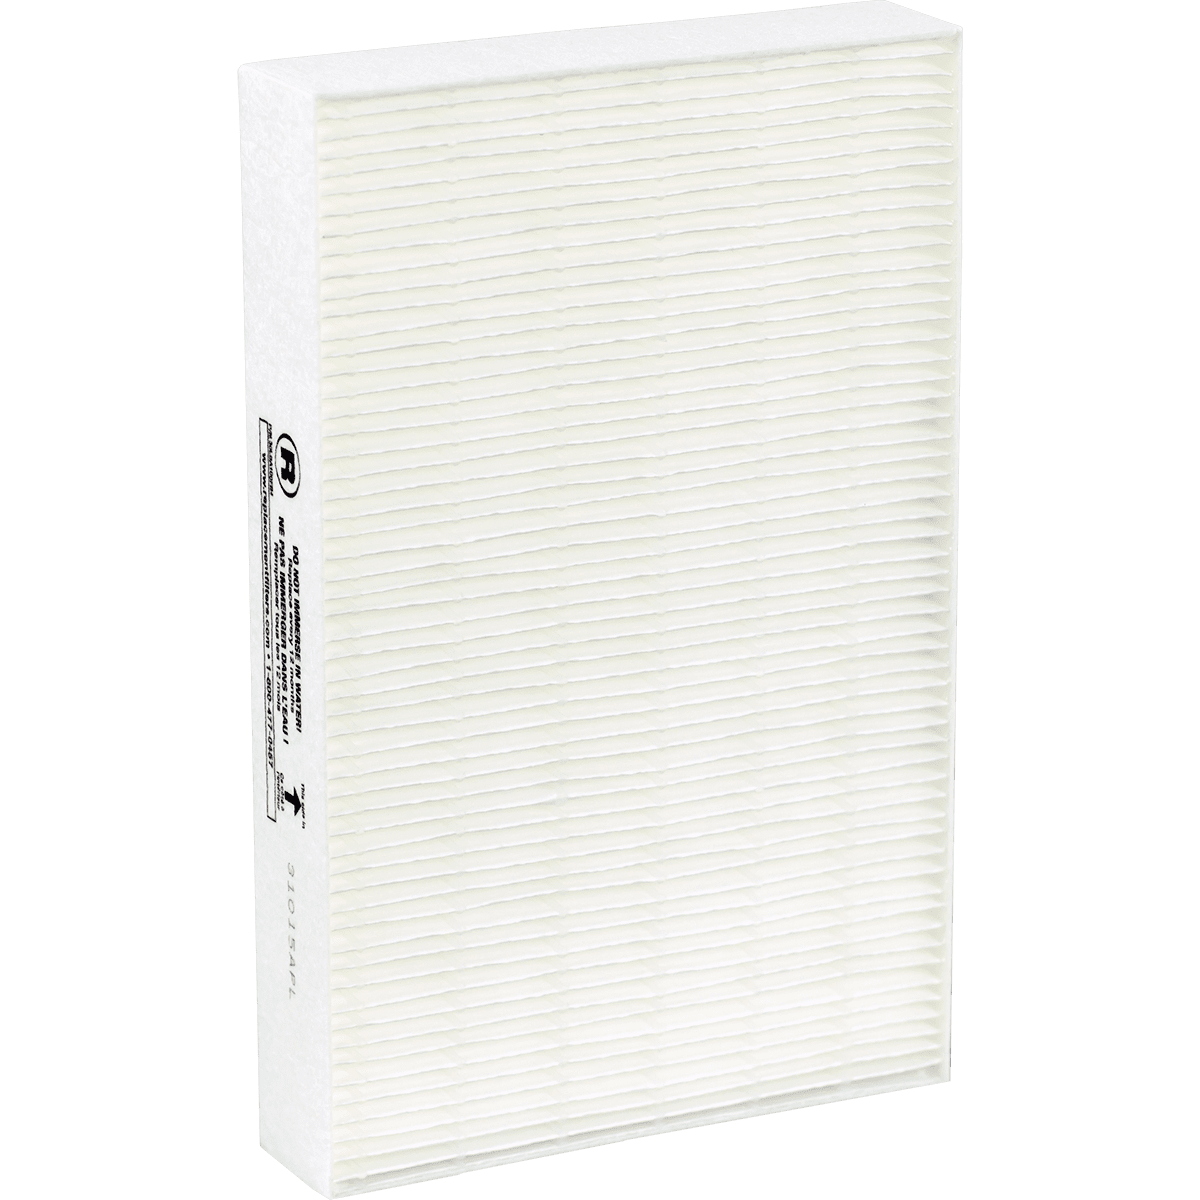 Honeywell True HEPA Replacement Filter R ho4069